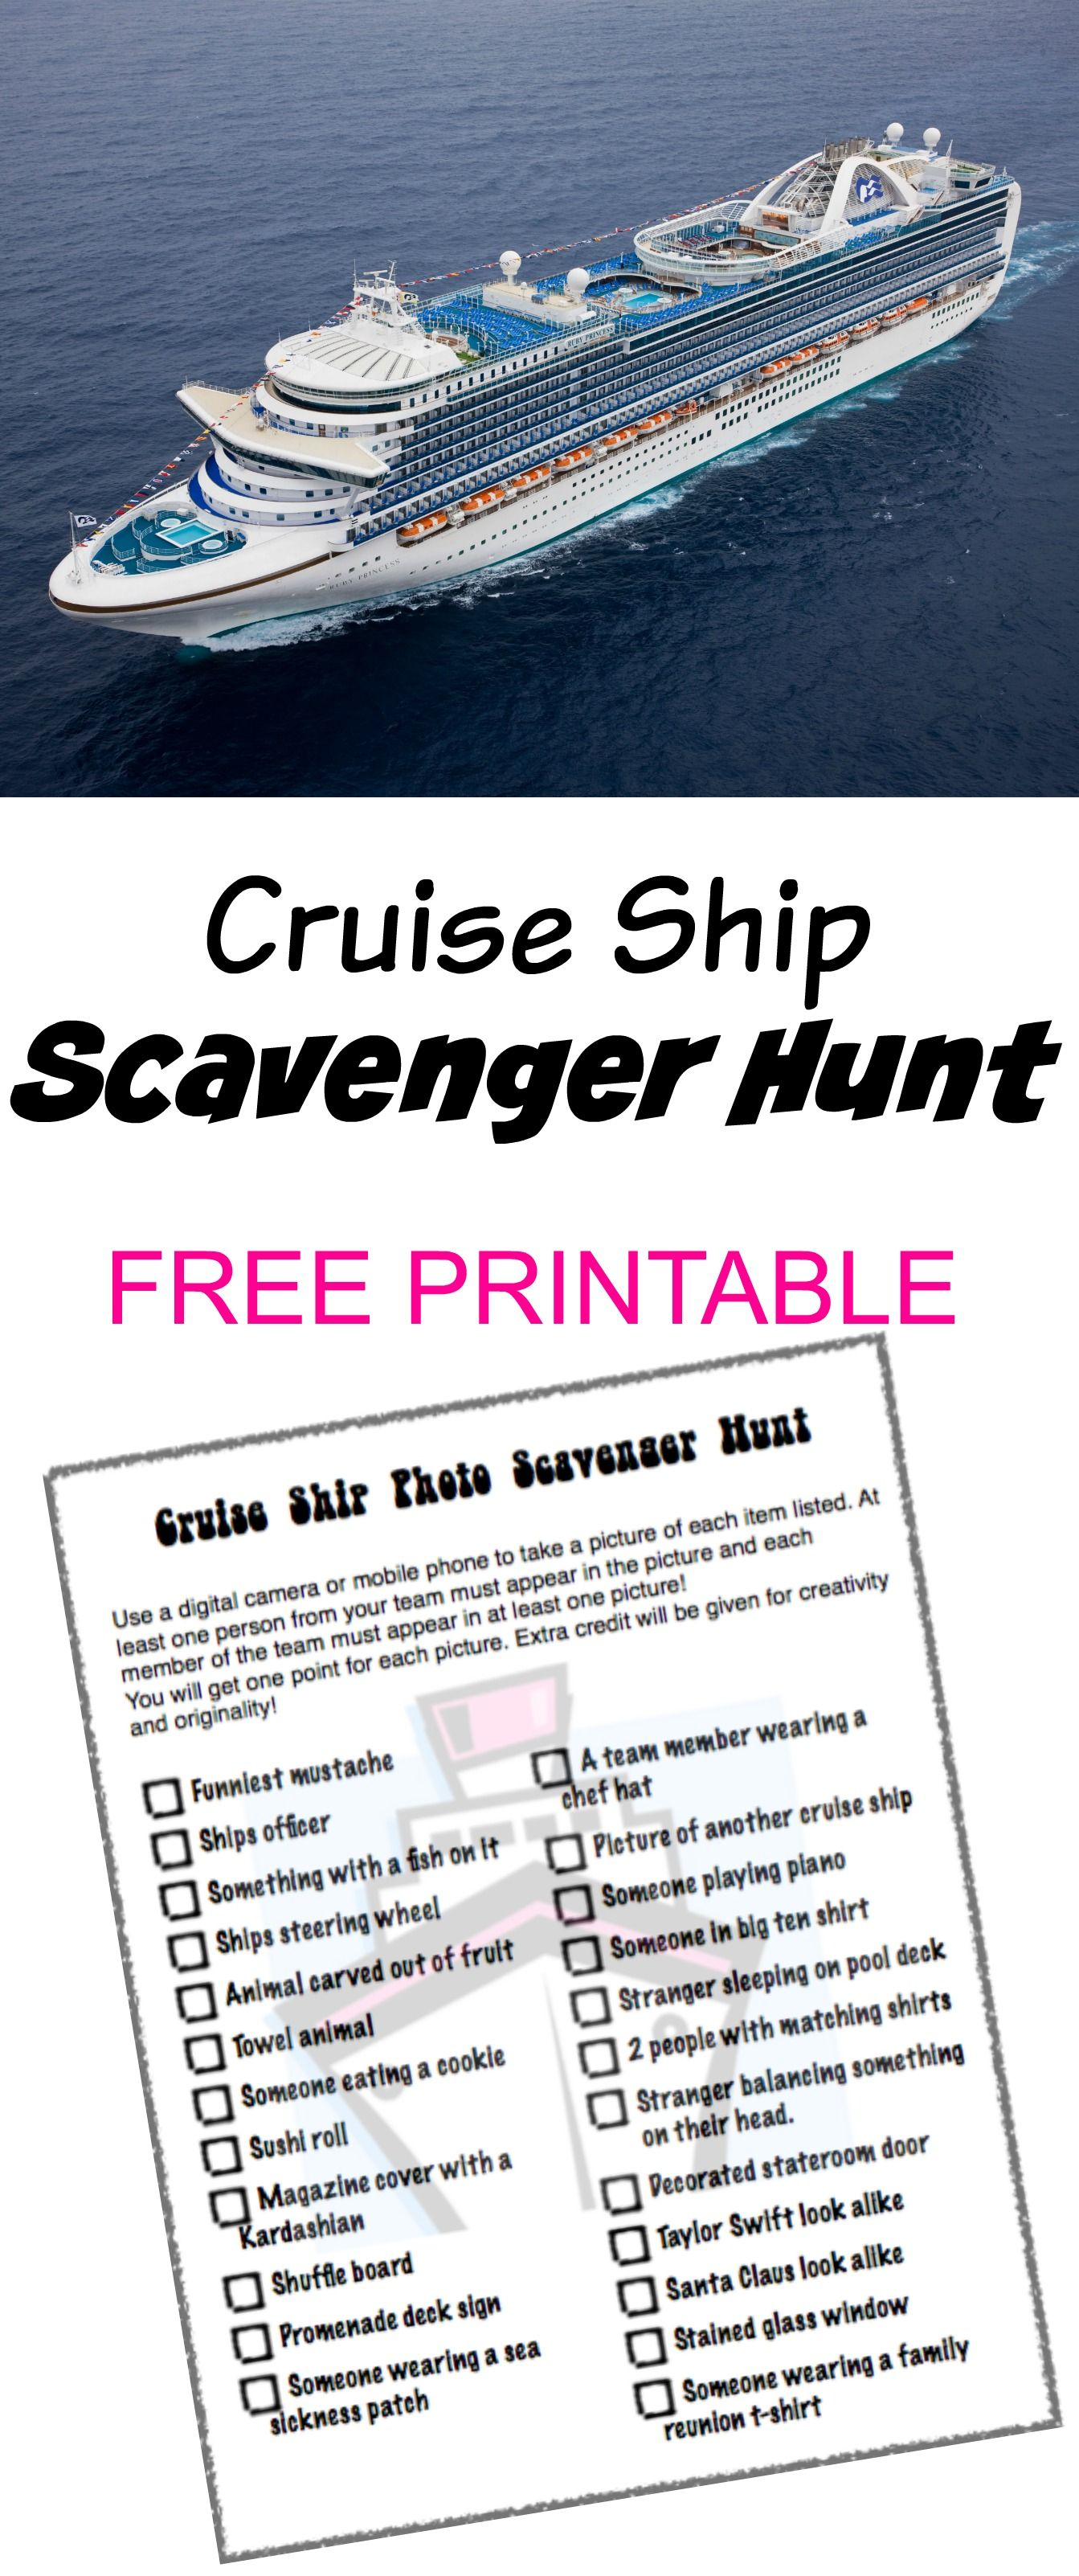 Cruise Ship Photo Scavenger Hunt  Free Printable  Great Activity To Do  With The Kids